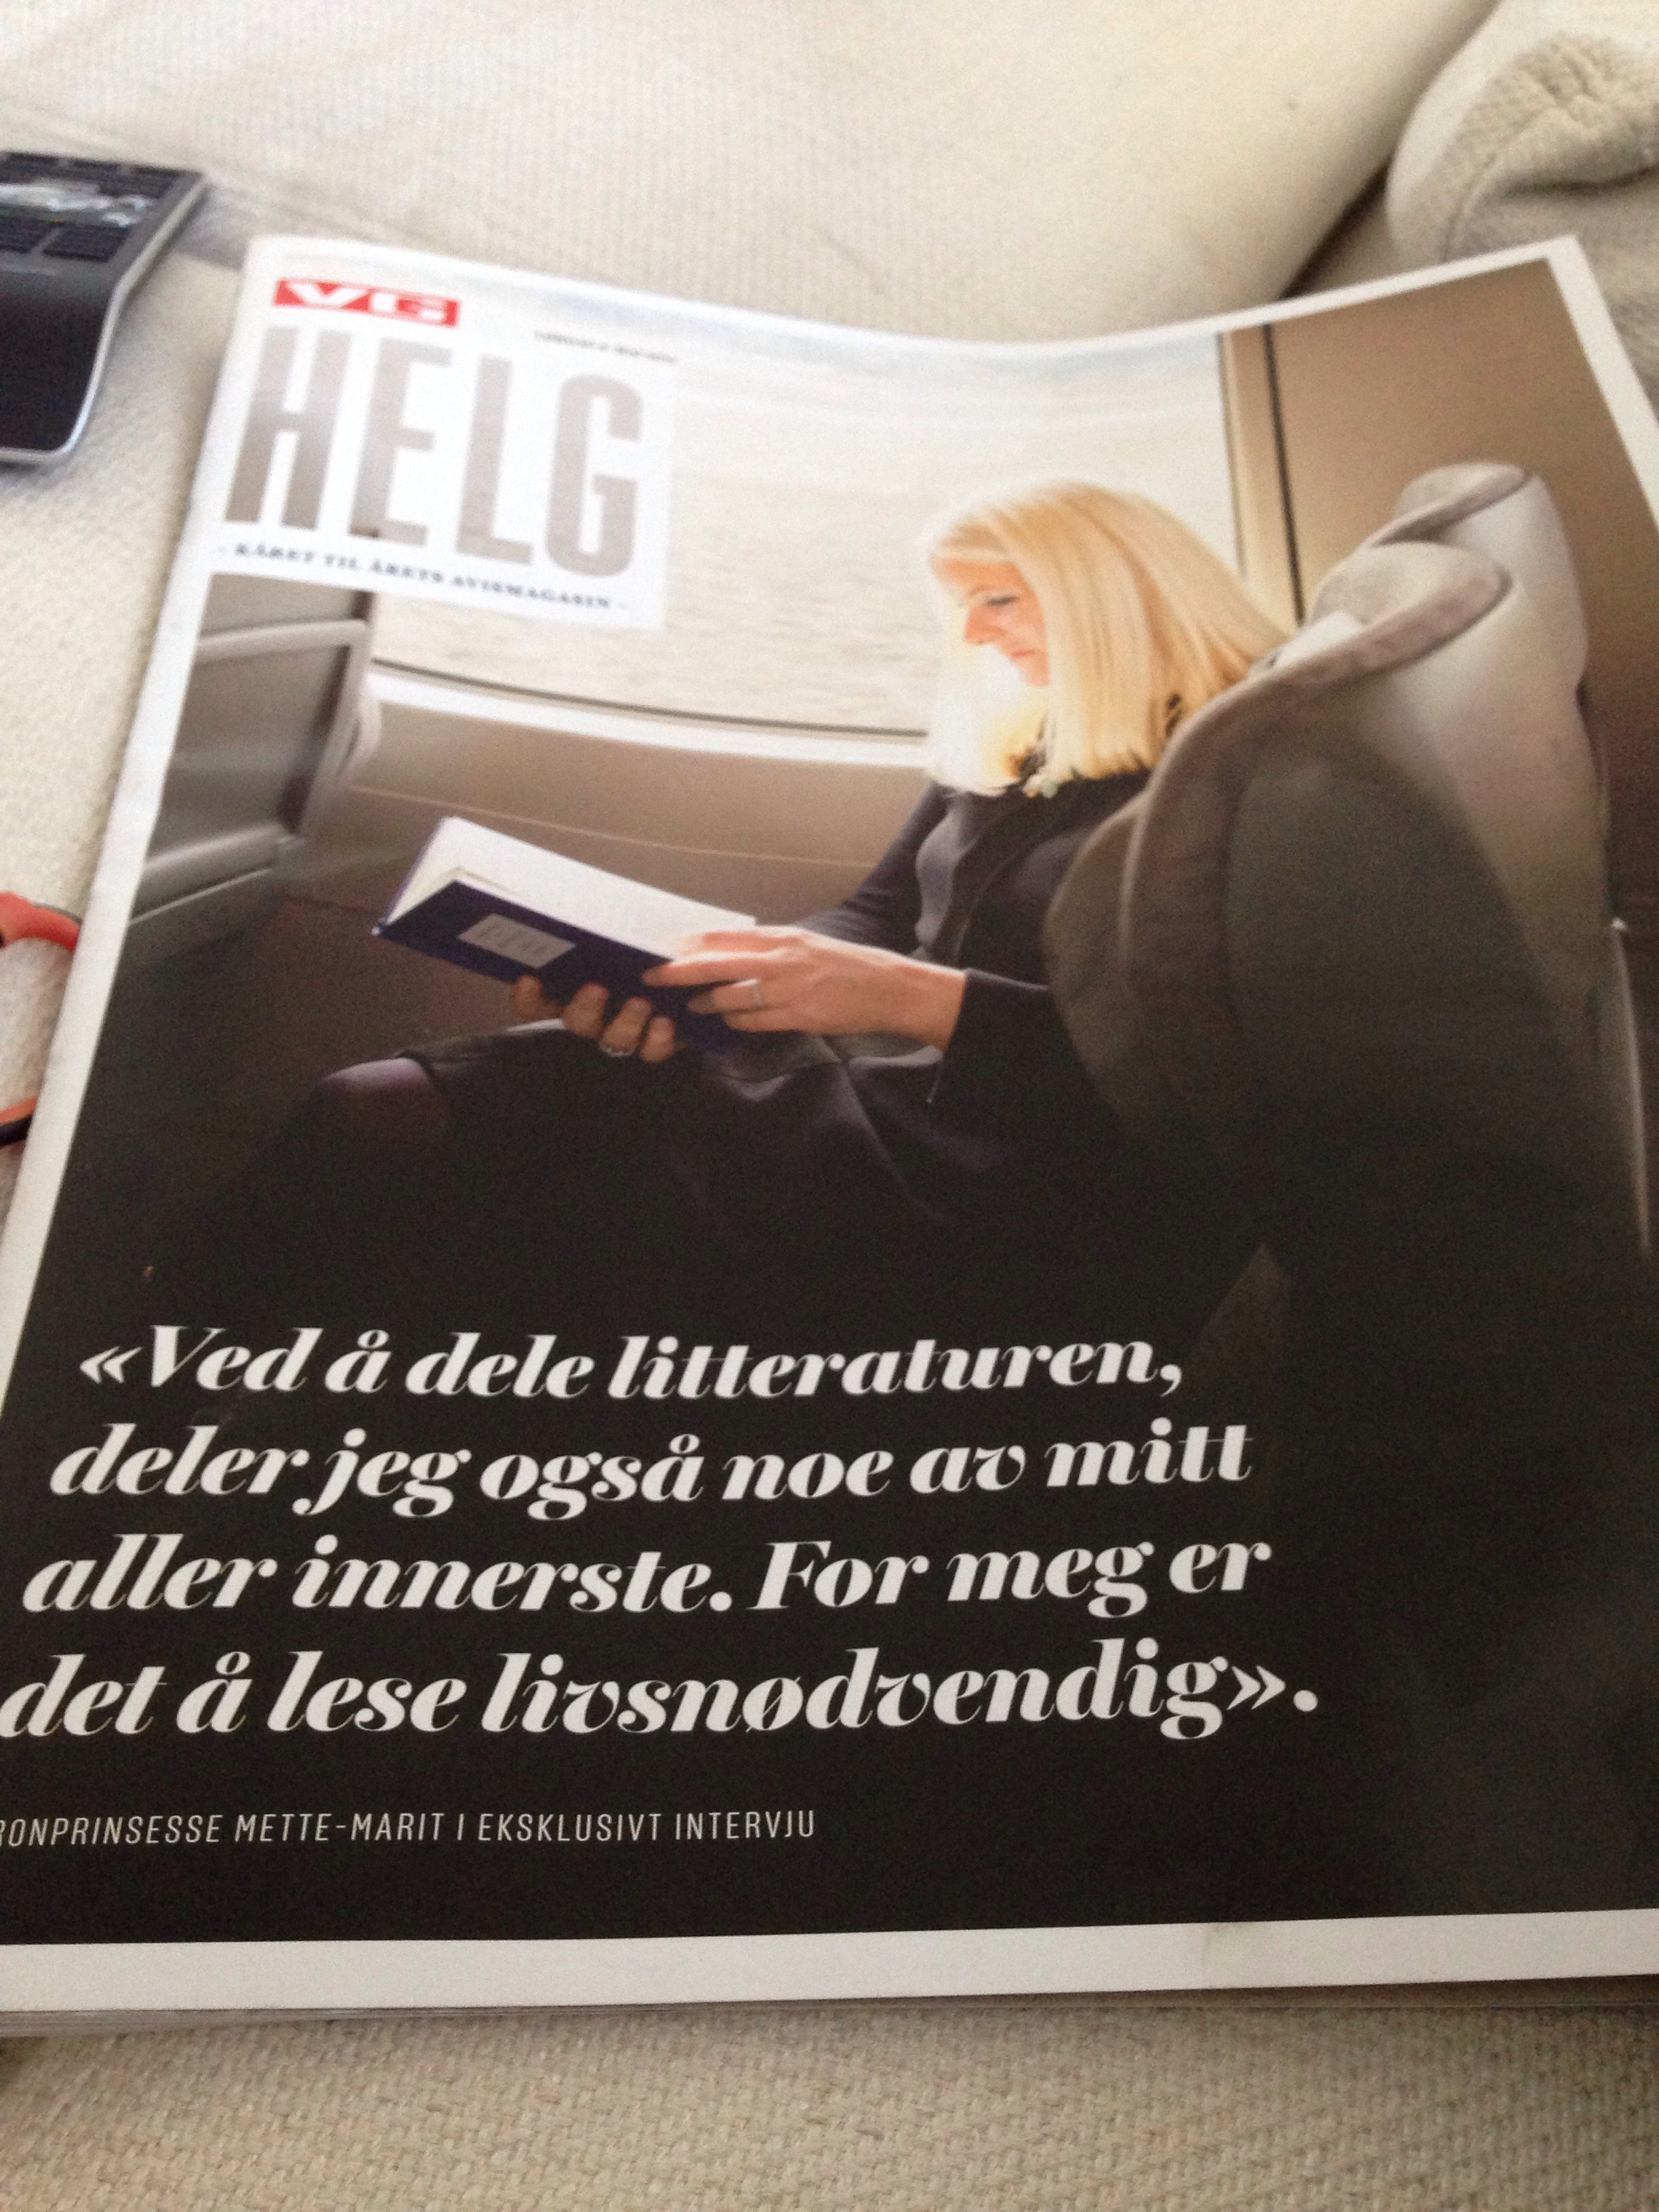 Mette-Marit cured of her fear of flying (and interview about reading habits.)